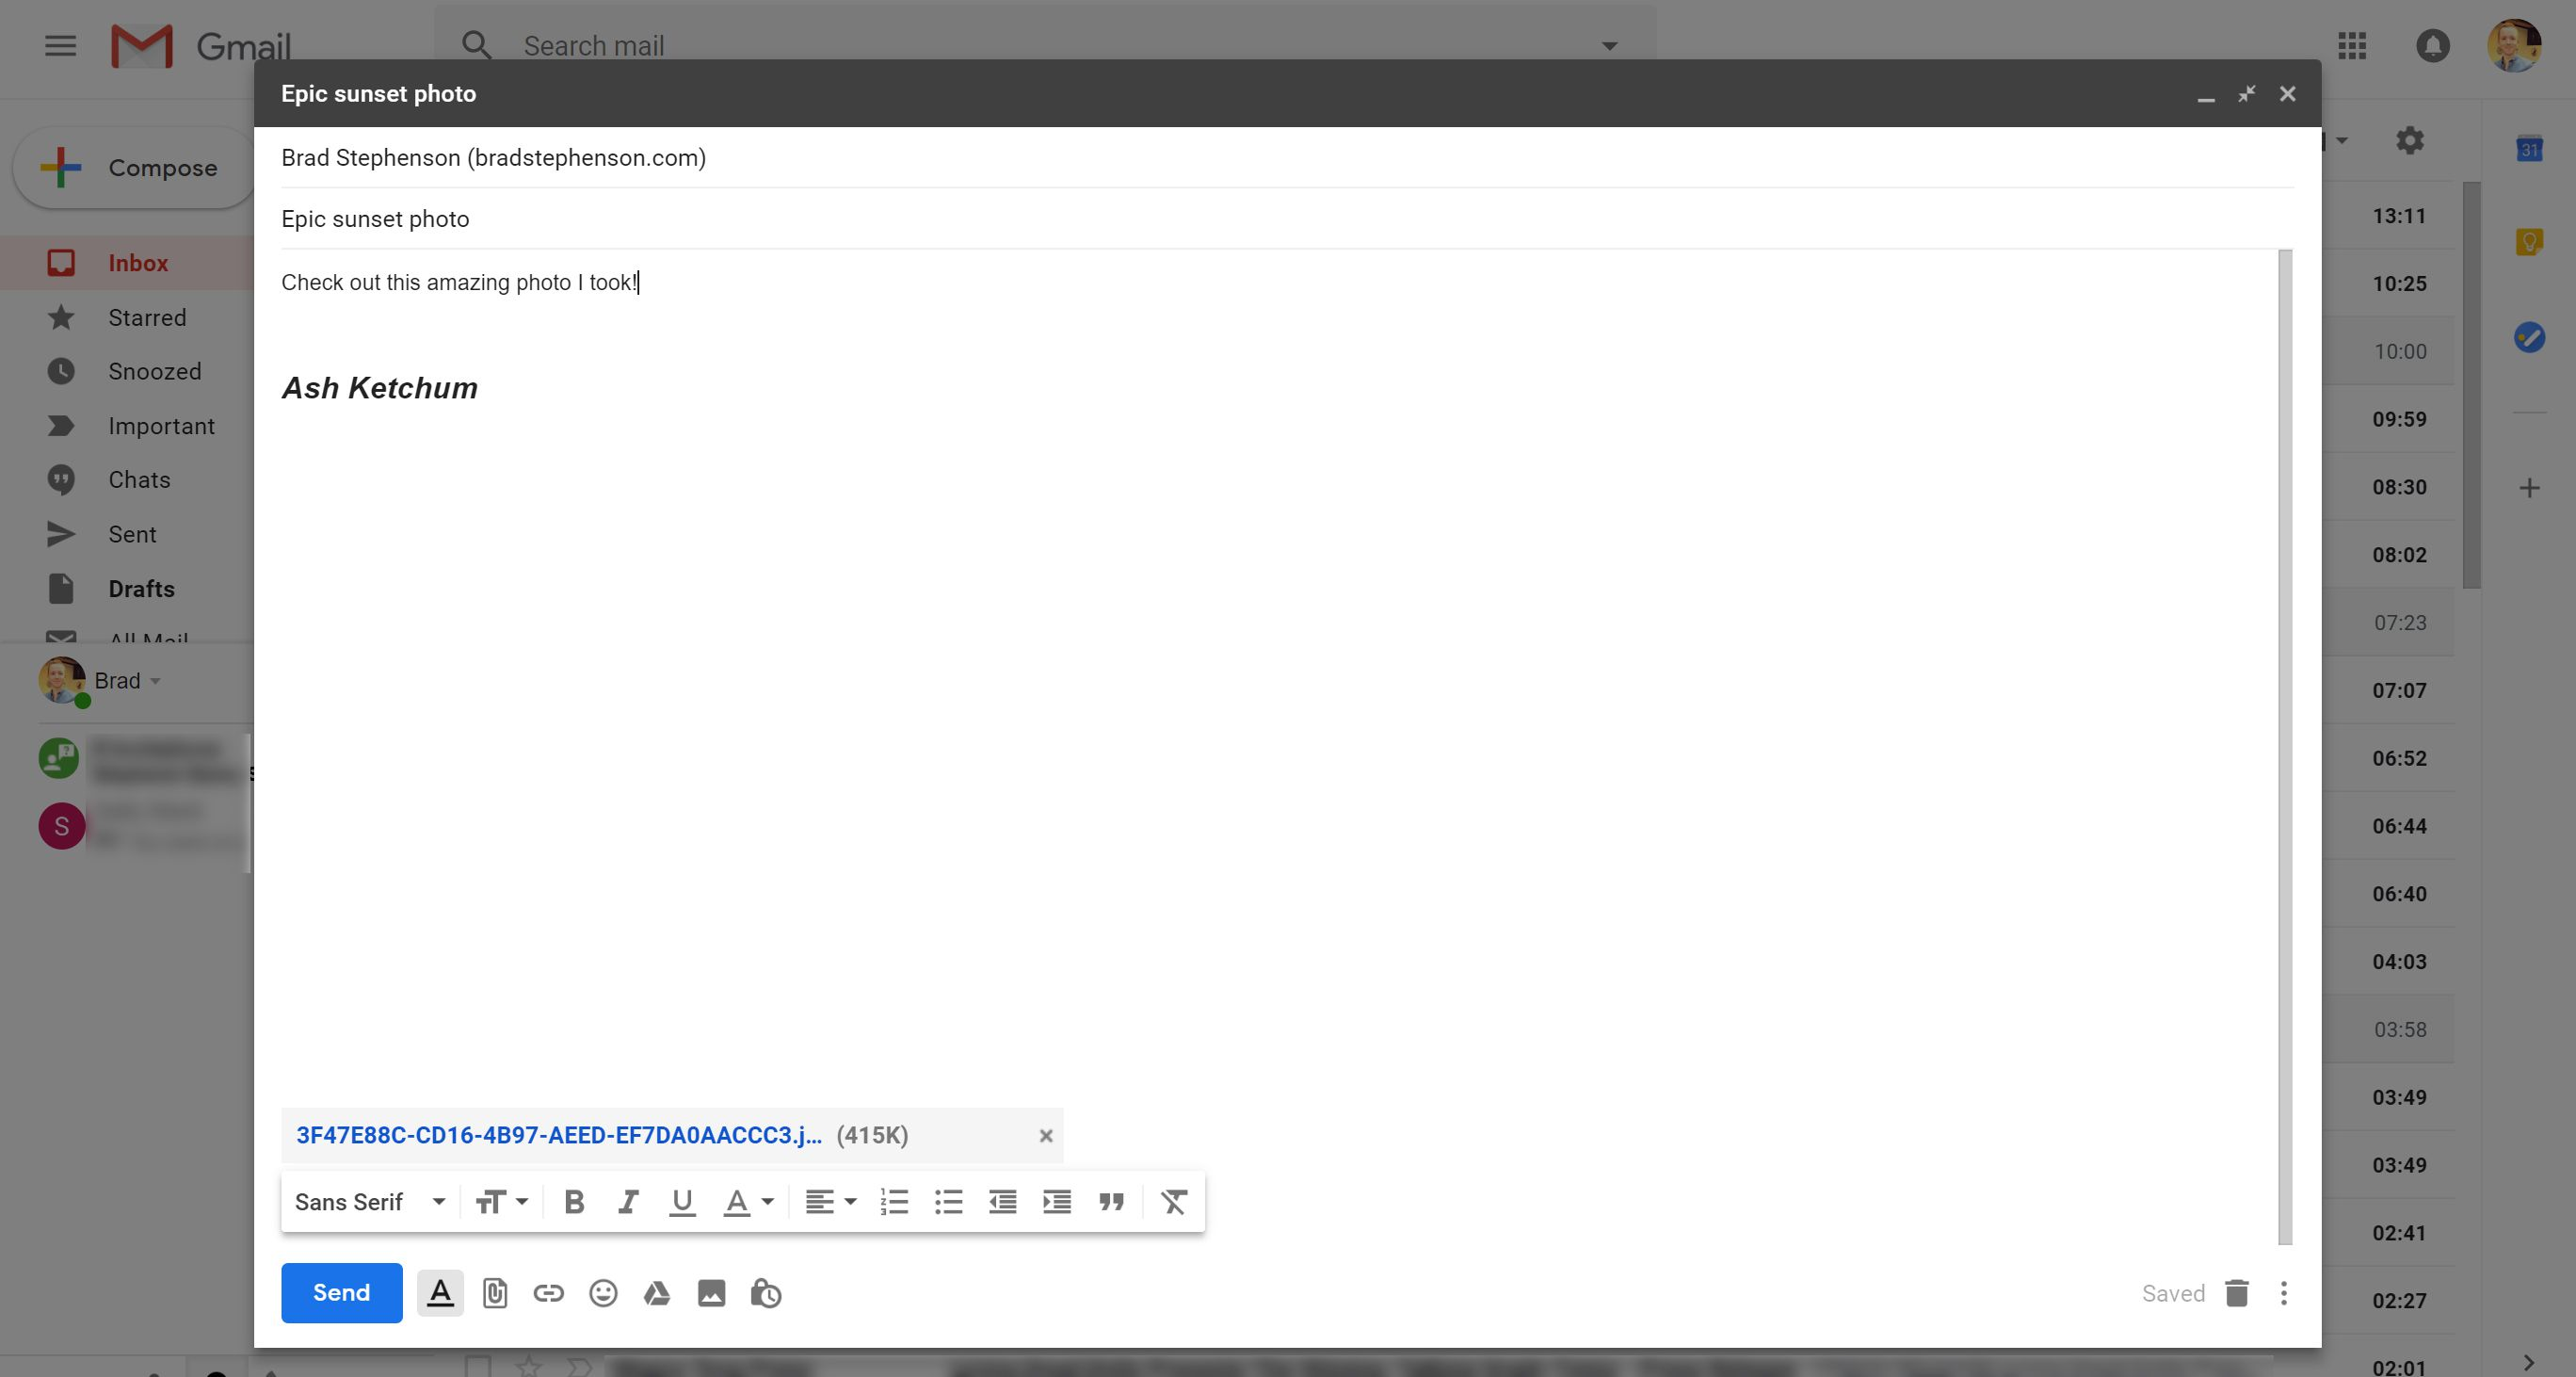 Adding images to an email in Gmail.